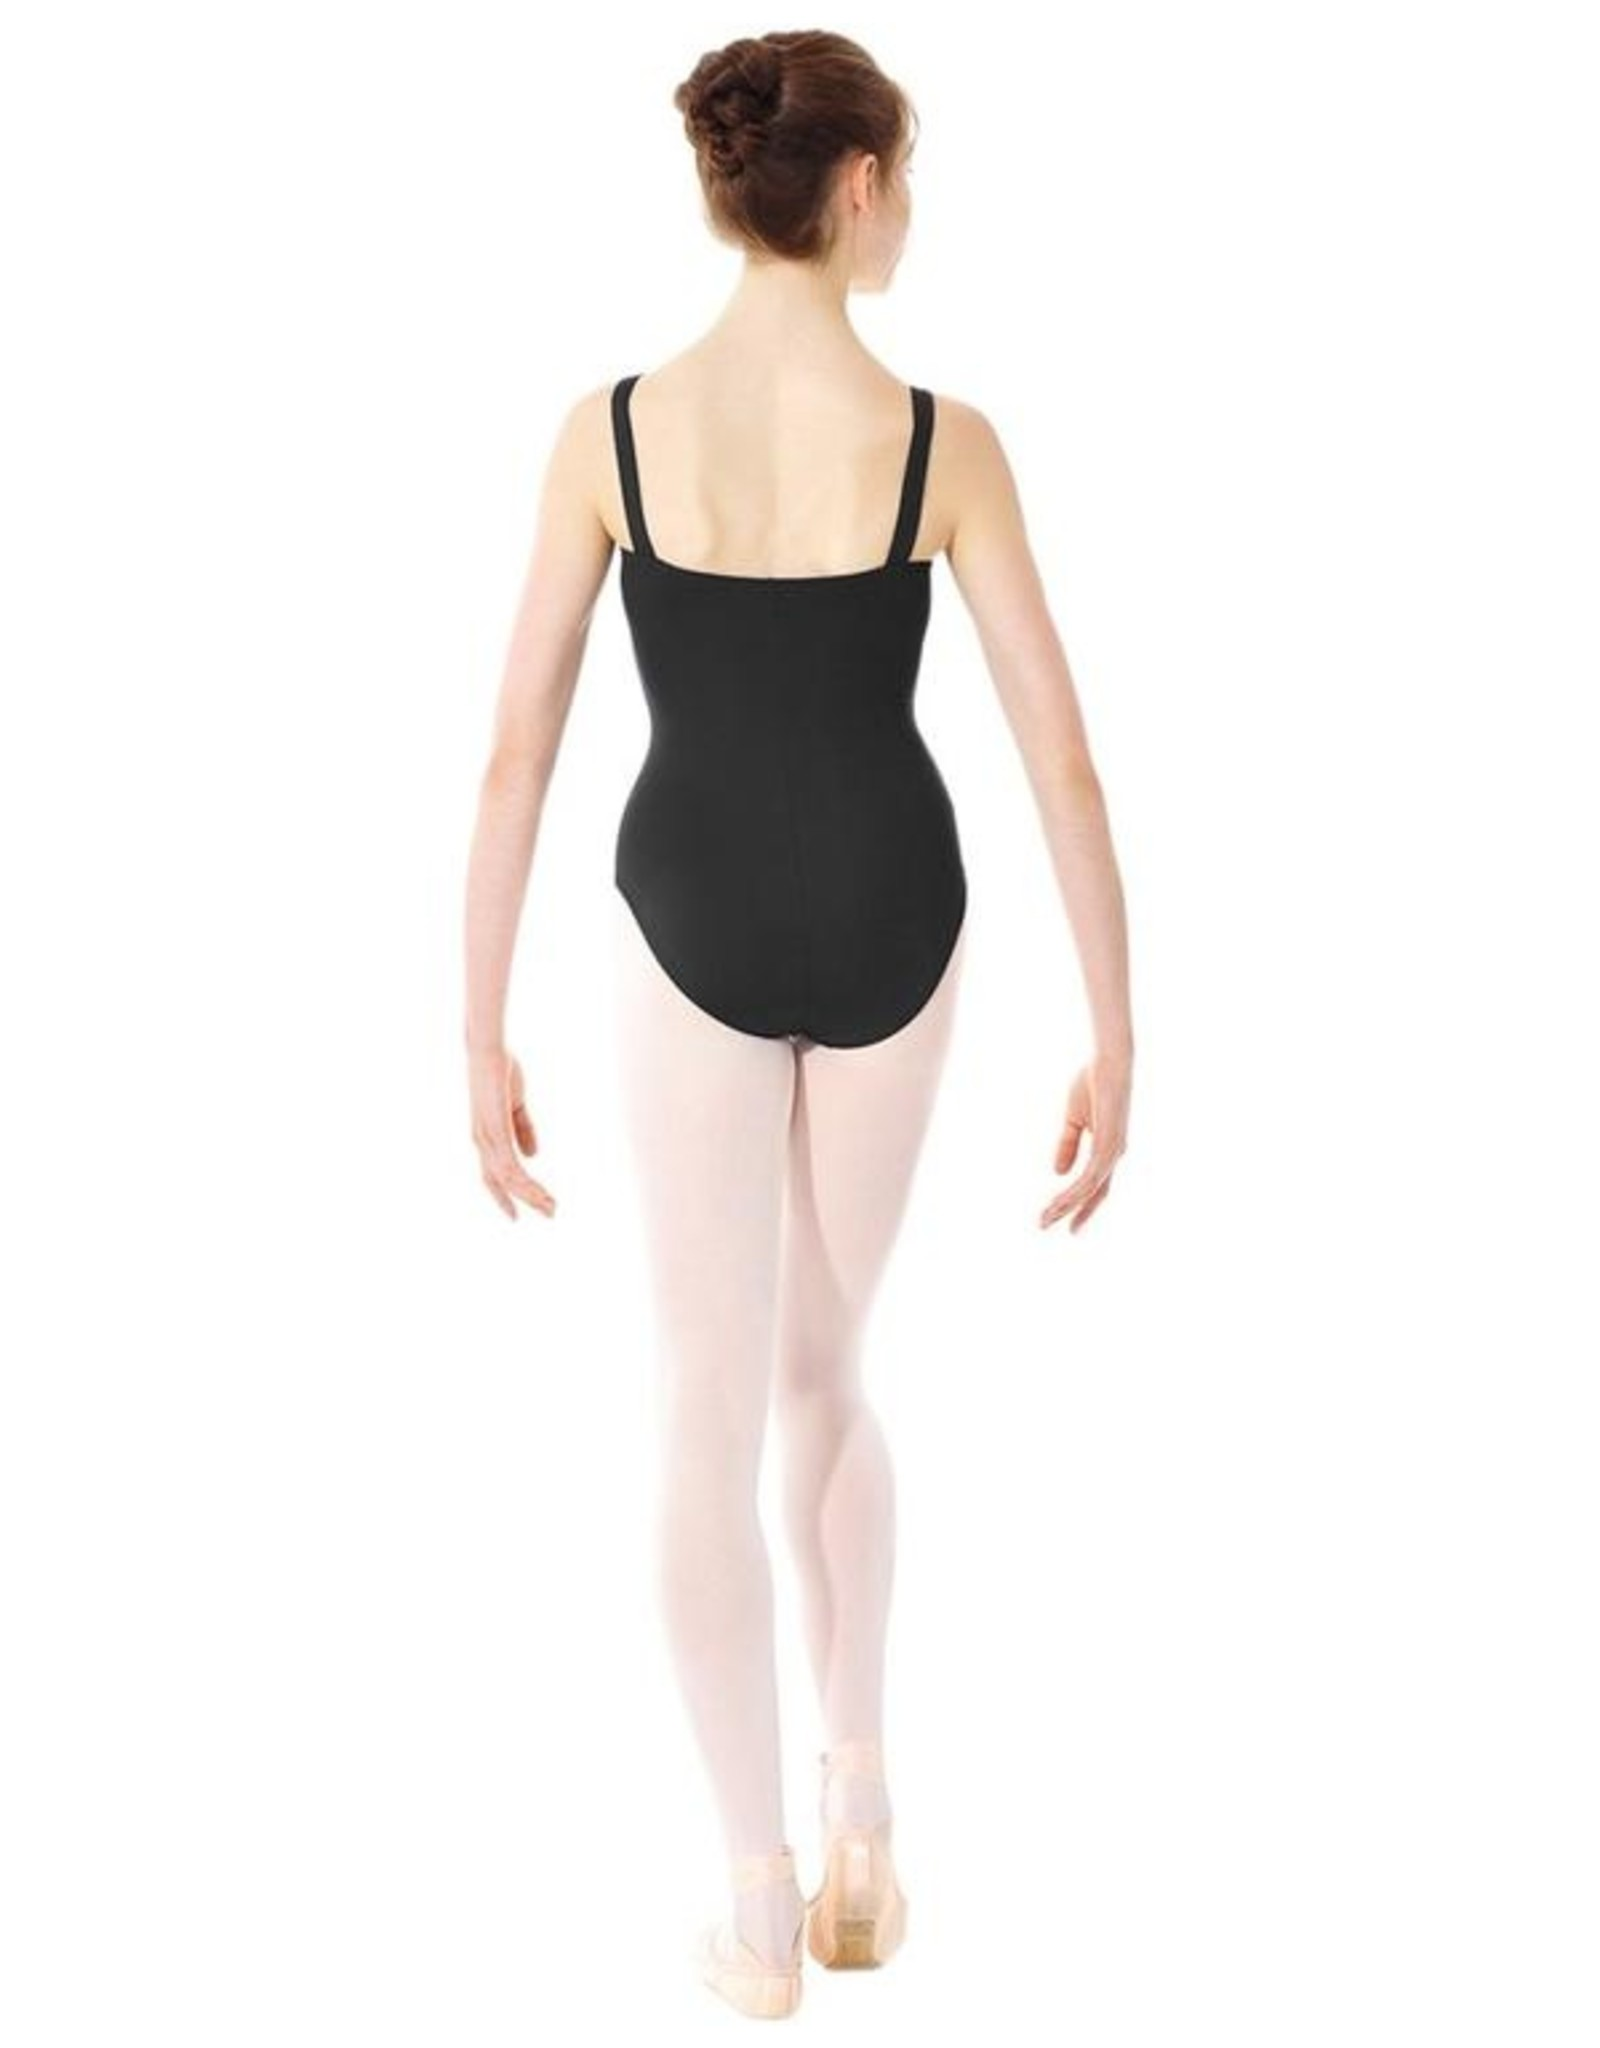 MONDOR 3523 EMPIRE WAIST MATRIX LEOTARD